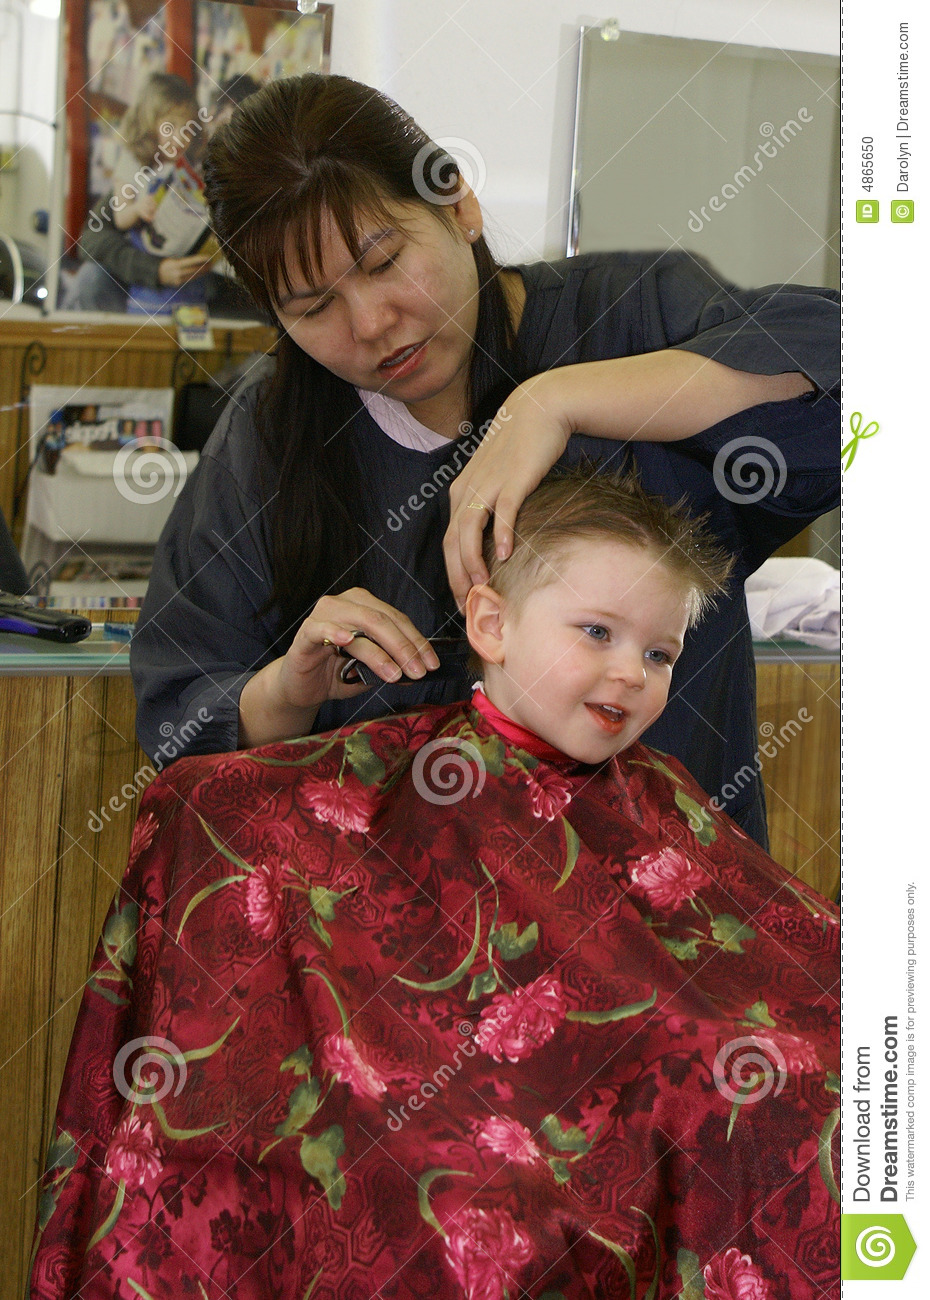 barber how to cut hair quicker